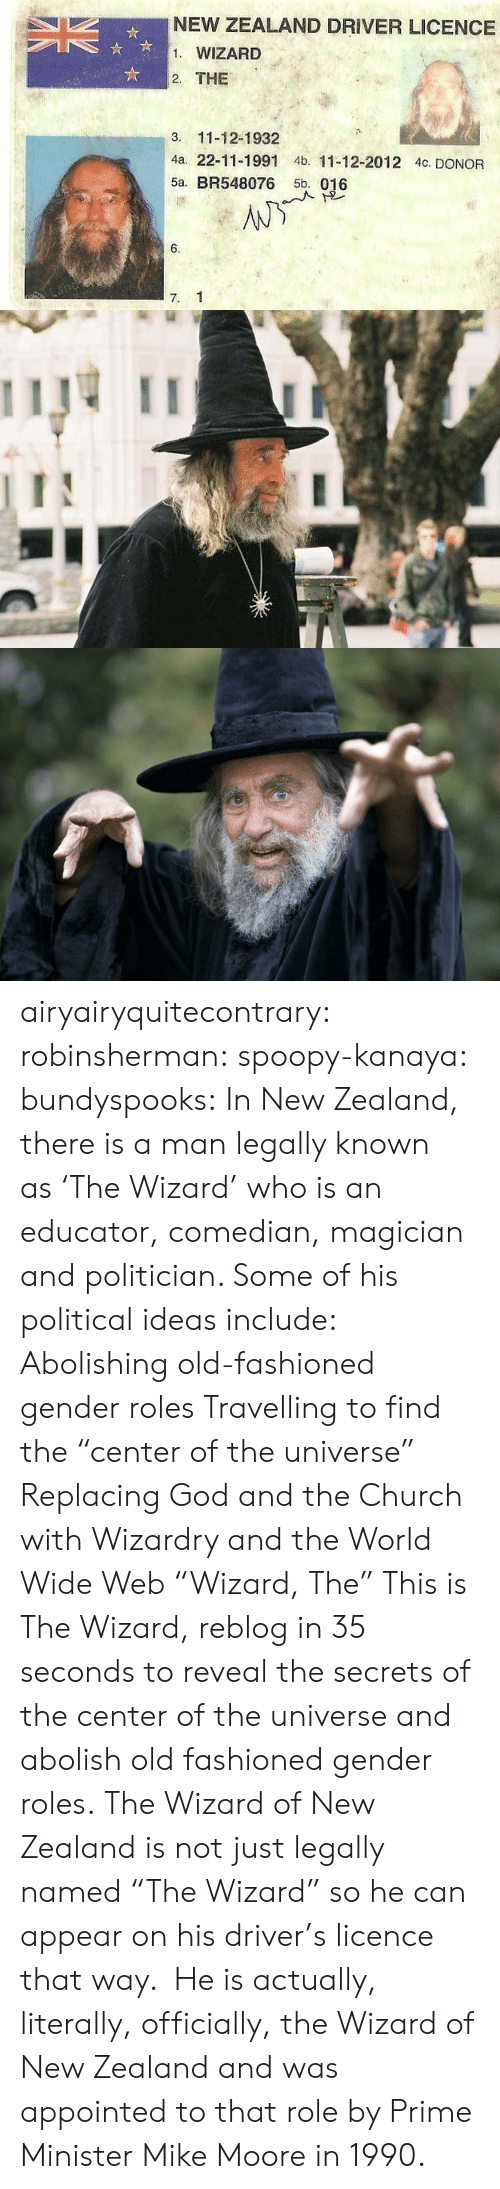 "politician: NEW ZEALAND DRIVER LICENCE  1. WIZARD  2. THE  3. 11-12-1932  4a. 22-11-1991 4b. 11-12-2012 4c. DONOR  5a. BR548076 5b. 016  6.  7. 1 airyairyquitecontrary:  robinsherman:  spoopy-kanaya:  bundyspooks:  In New Zealand, there is a man legally known as 'The Wizard' who is an educator, comedian, magician and politician. Some of his political ideas include: Abolishing old-fashioned gender roles Travelling to find the ""center of the universe"" Replacing God and the Church with Wizardry and the World Wide Web  ""Wizard, The""  This is The Wizard, reblog in 35 seconds to reveal the secrets of the center of the universe and abolish old fashioned gender roles.  The Wizard of New Zealand is not just legally named ""The Wizard"" so he can appear on his driver's licence that way.  He is actually, literally, officially, the Wizard of New Zealand and was appointed to that role by Prime Minister Mike Moore in 1990."